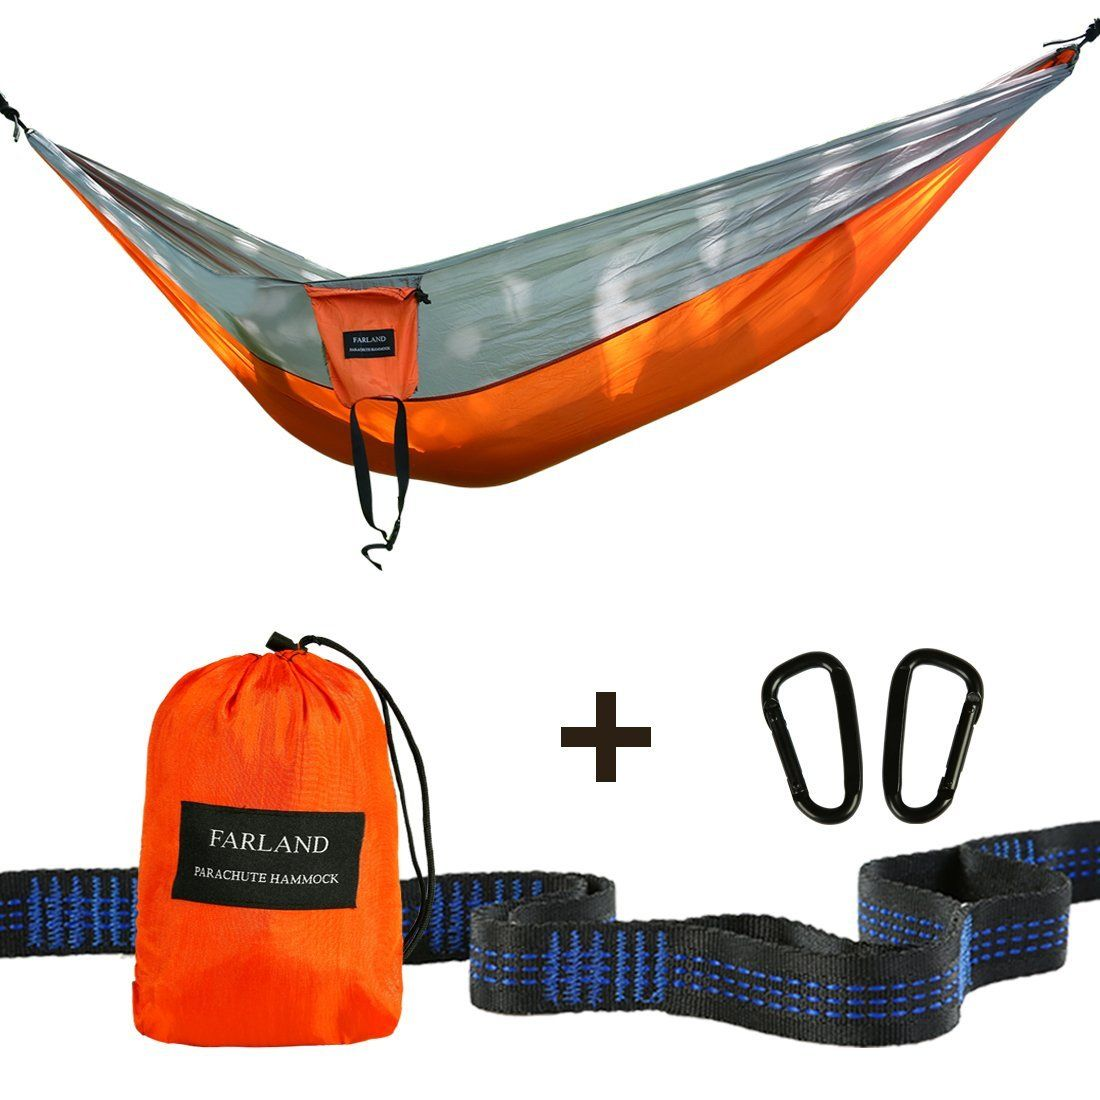 amazon    outdoor camping hammock with 10ft 16 loop tree straps by farland amazon    outdoor camping hammock with 10ft 16 loop tree straps      rh   pinterest